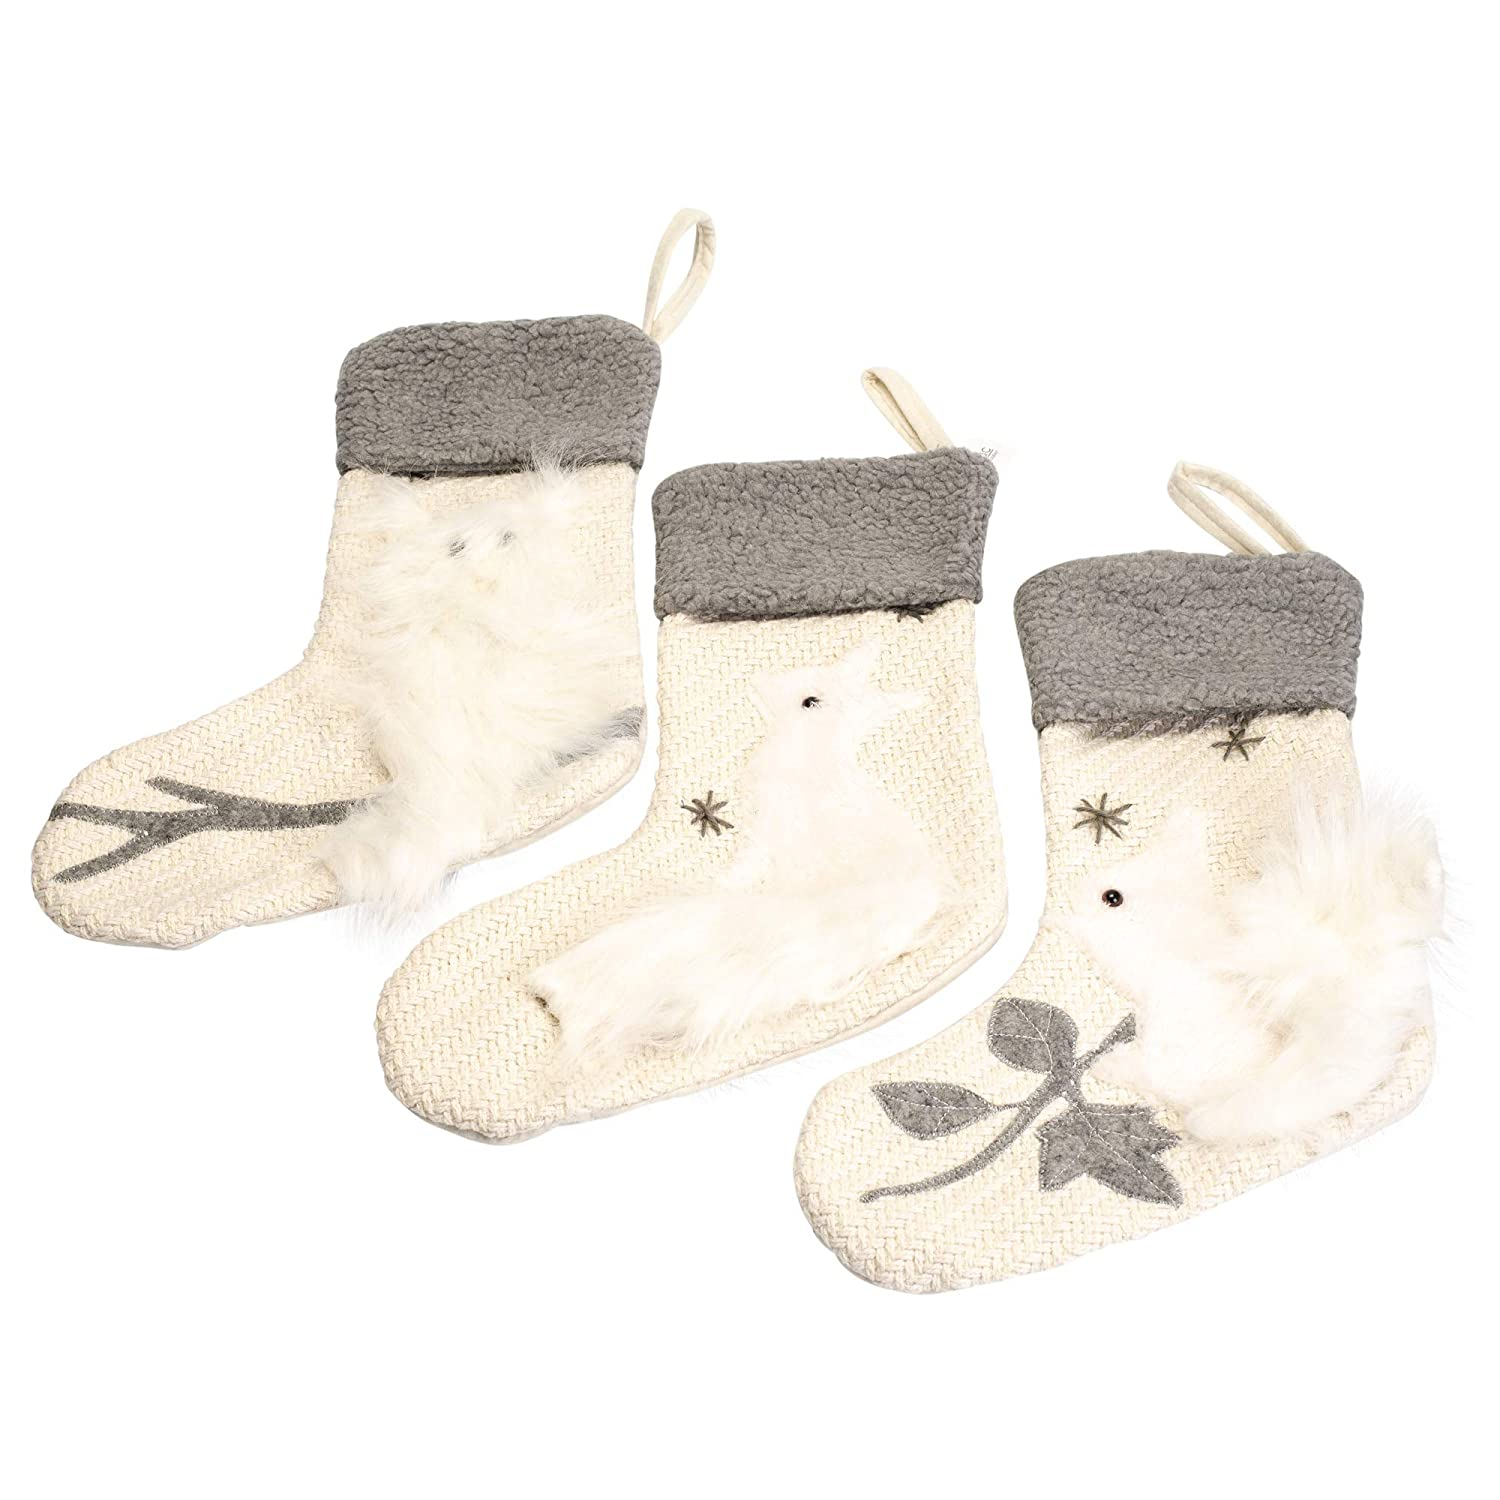 Woodland Faux Fur Cream and Grey 20 x 12 Polyester Christmas Stockings Set of 3 Inc Transpac Imports